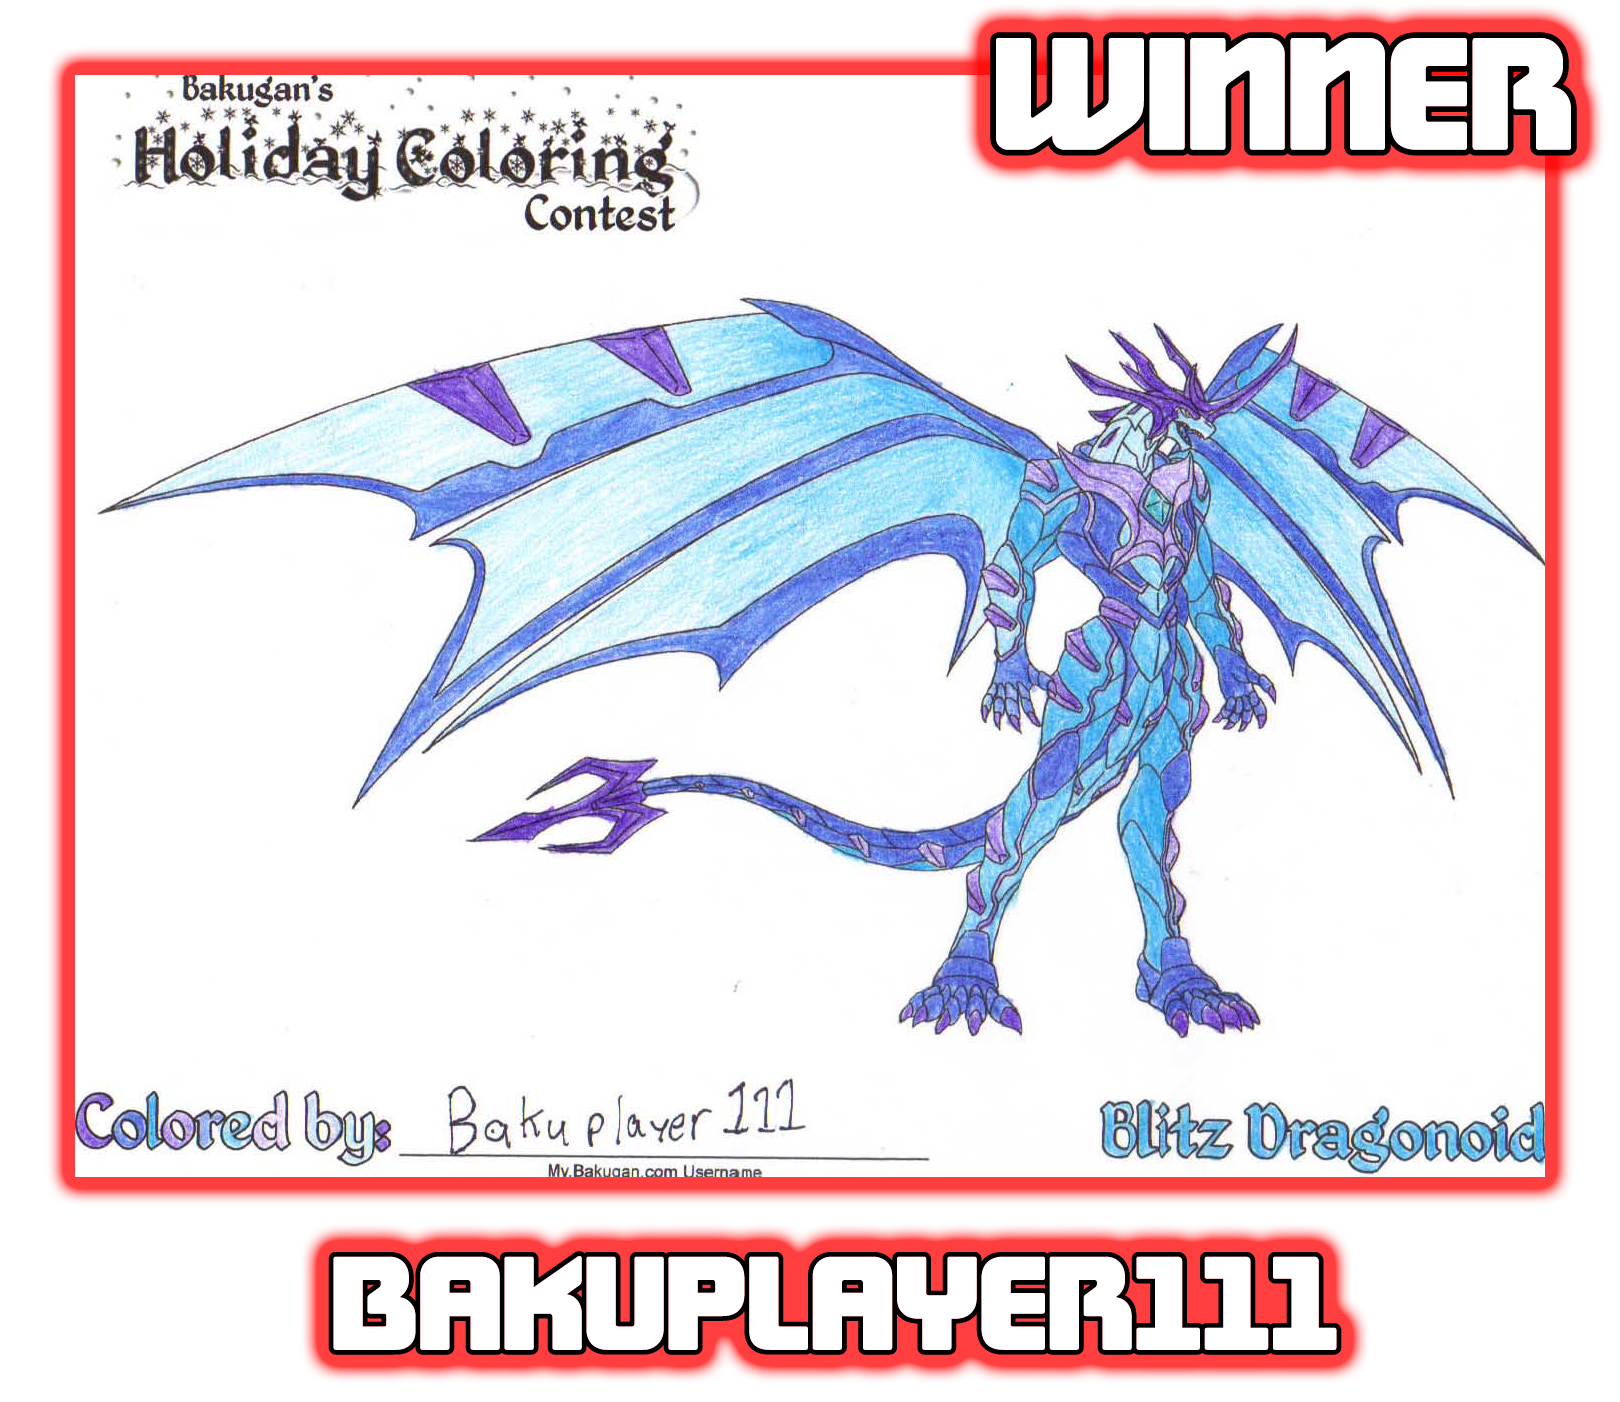 bakuplayer111Holiday Winners Of the Bakugan Holiday Coloring Contest!